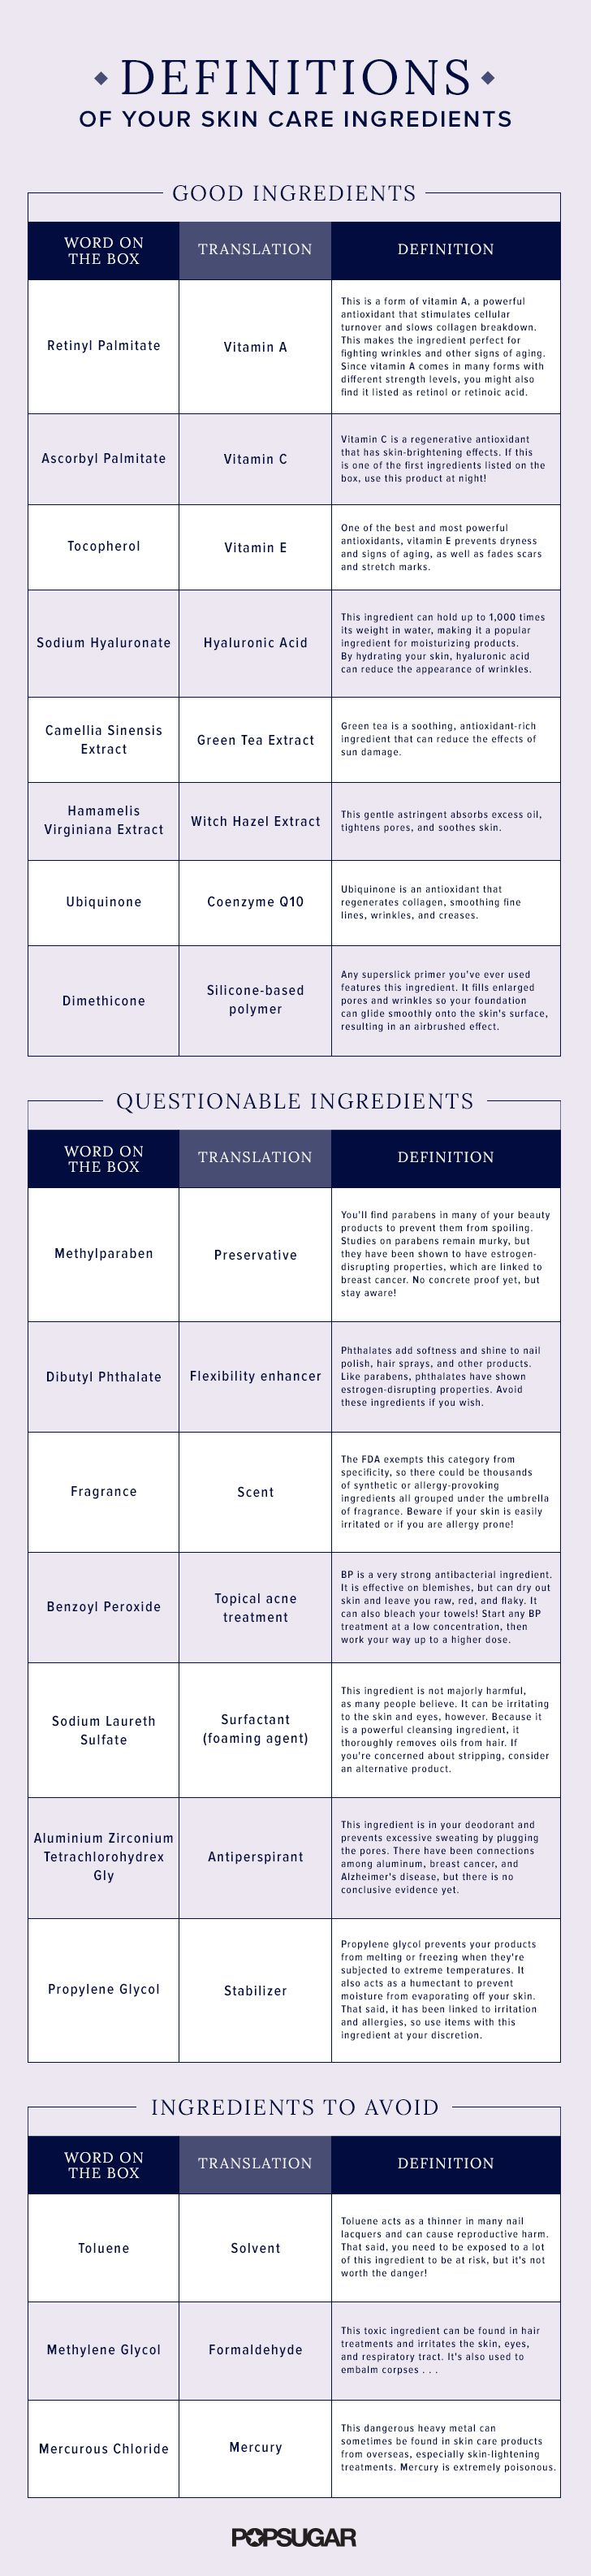 Great table with skin care ingredients you should look out for. Check the labels of all products in your beauty closet and sort out the ones that use dangerous toxins.